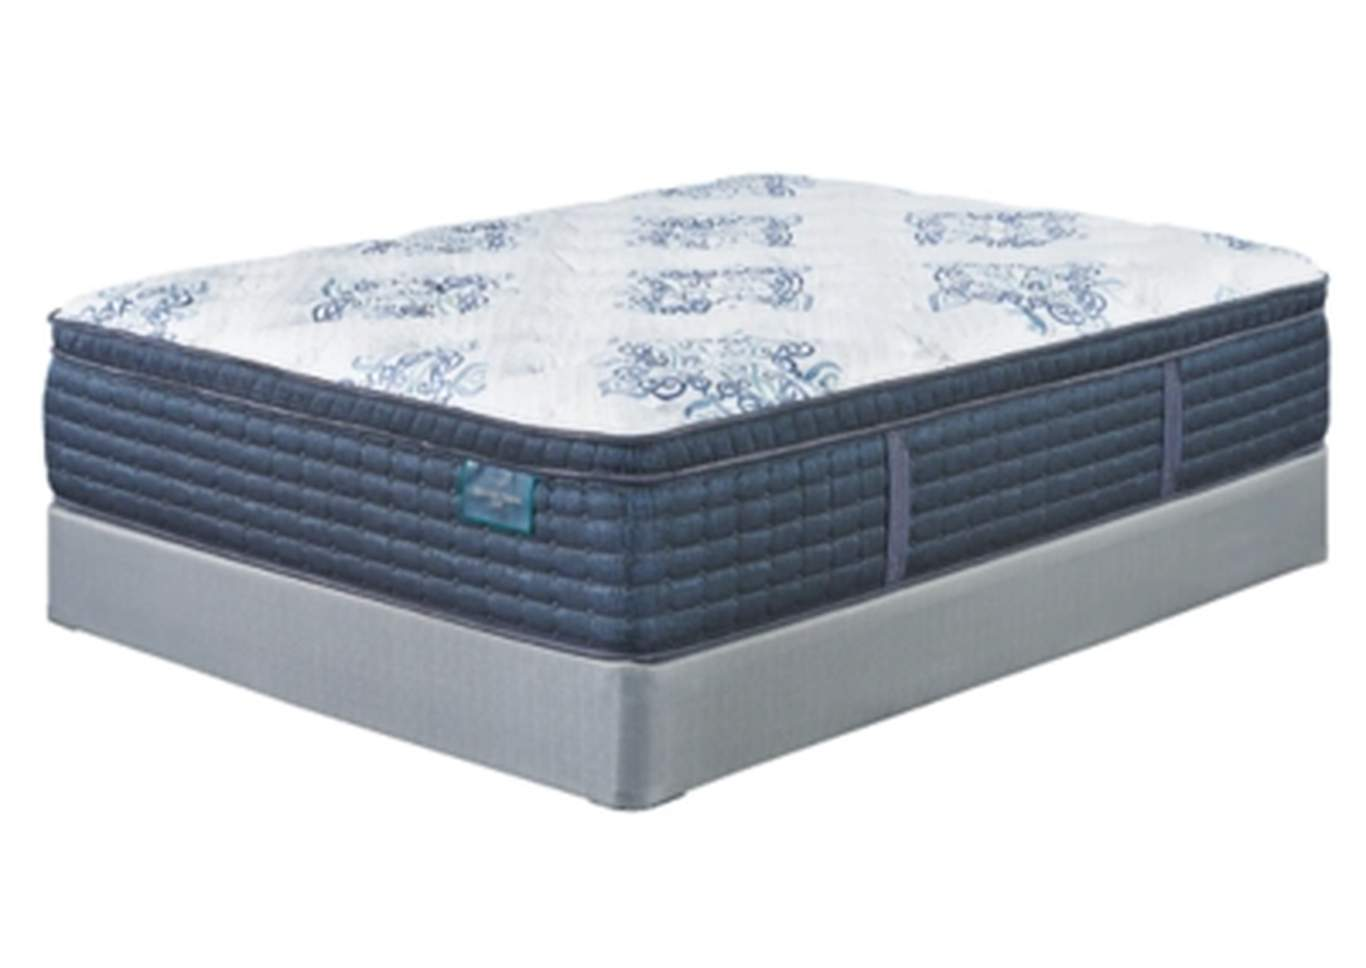 Mt. Dana Euro Top White Twin Mattress,Sierra Sleep by Ashley